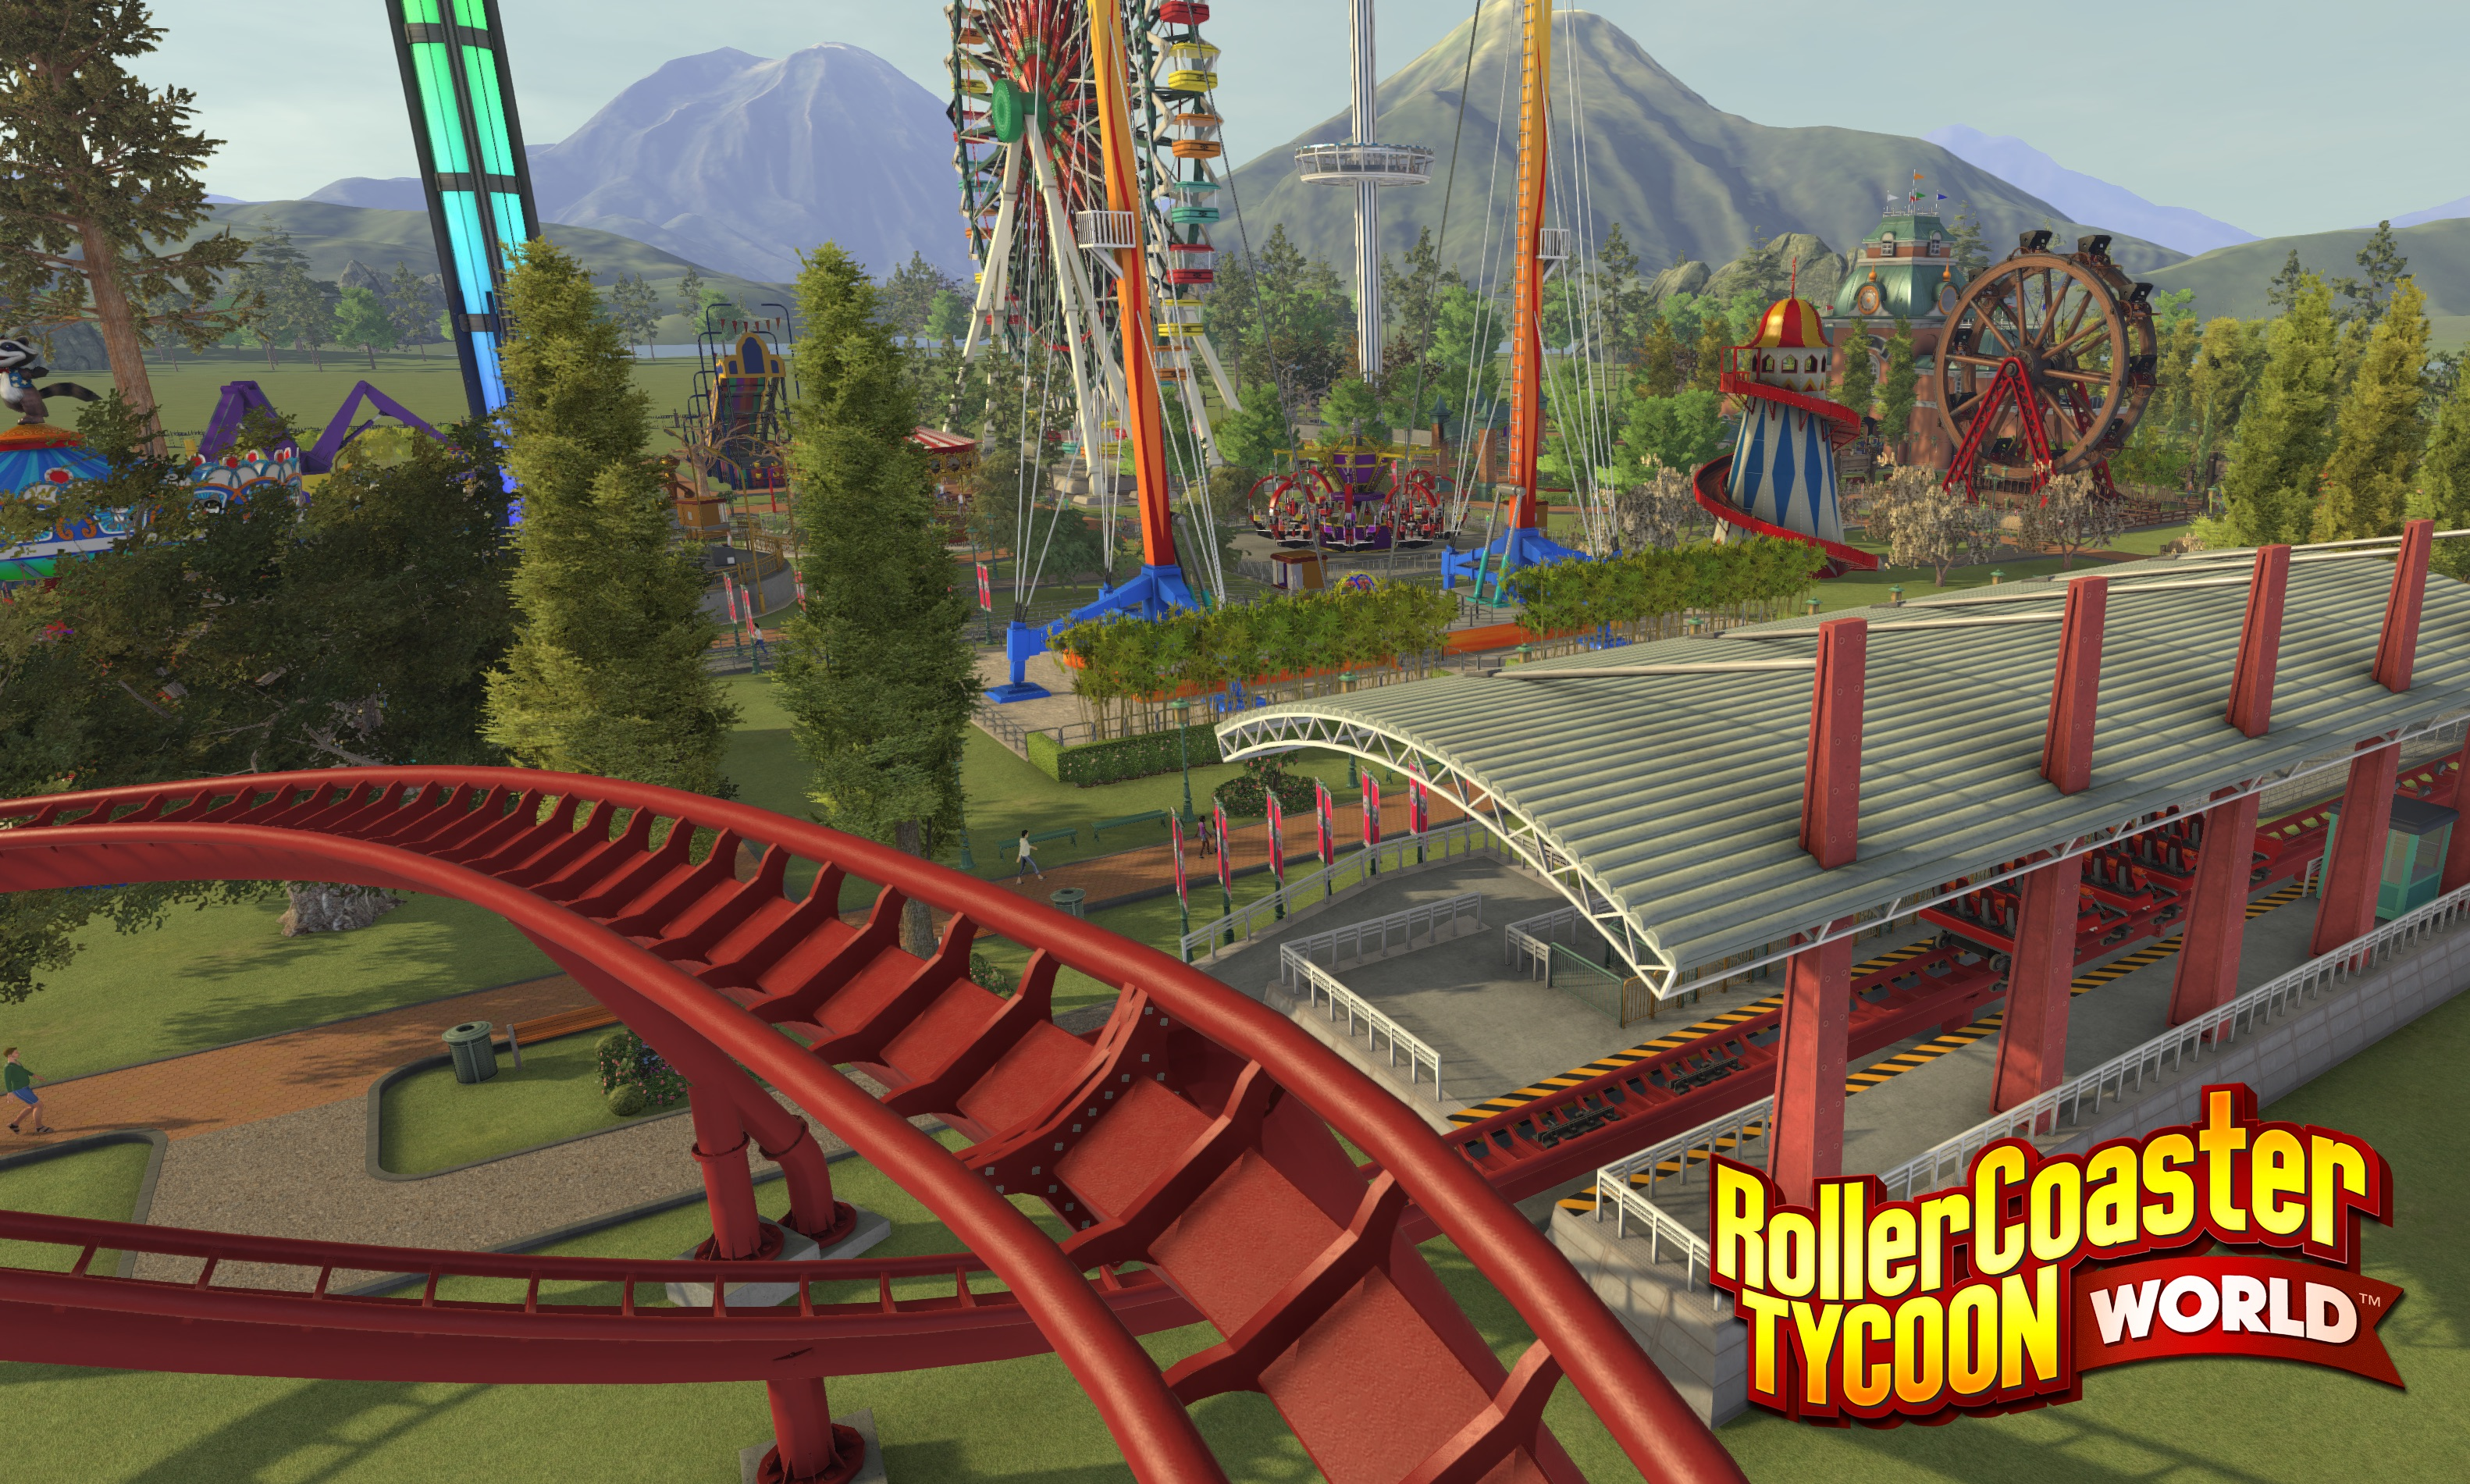 RollerCoaster Tycoon World shunted to Early Access model | PC Gamer